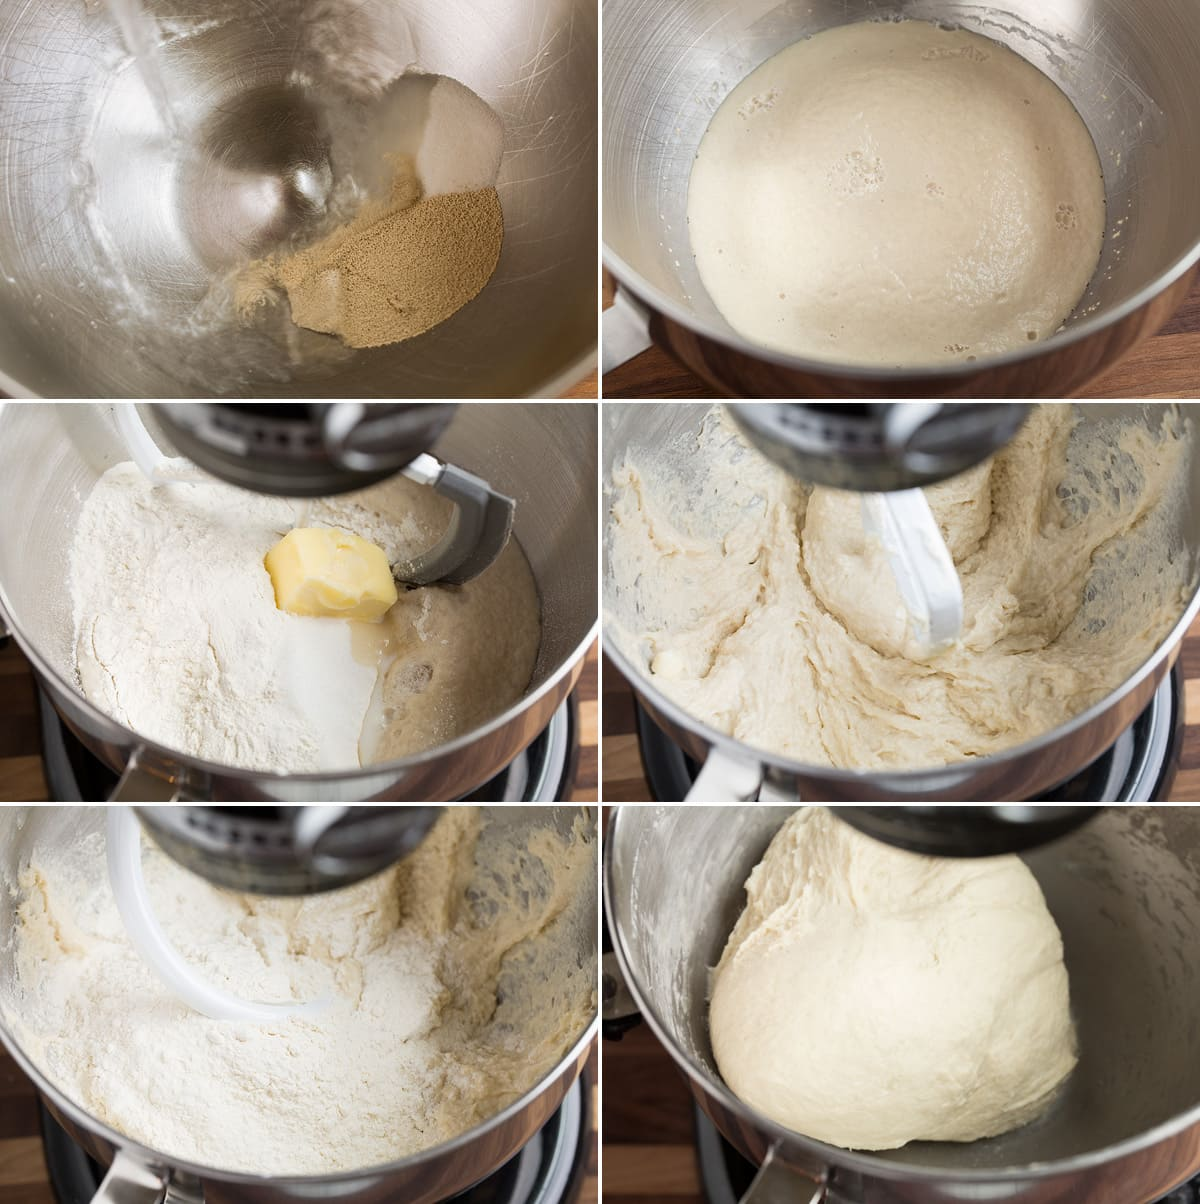 Collage image showing six steps to making bread dough in a stand mixer including proofing yeast with water and sugar, mixing in flour salt and butter, and mixture after it has finished kneading in the mixer.